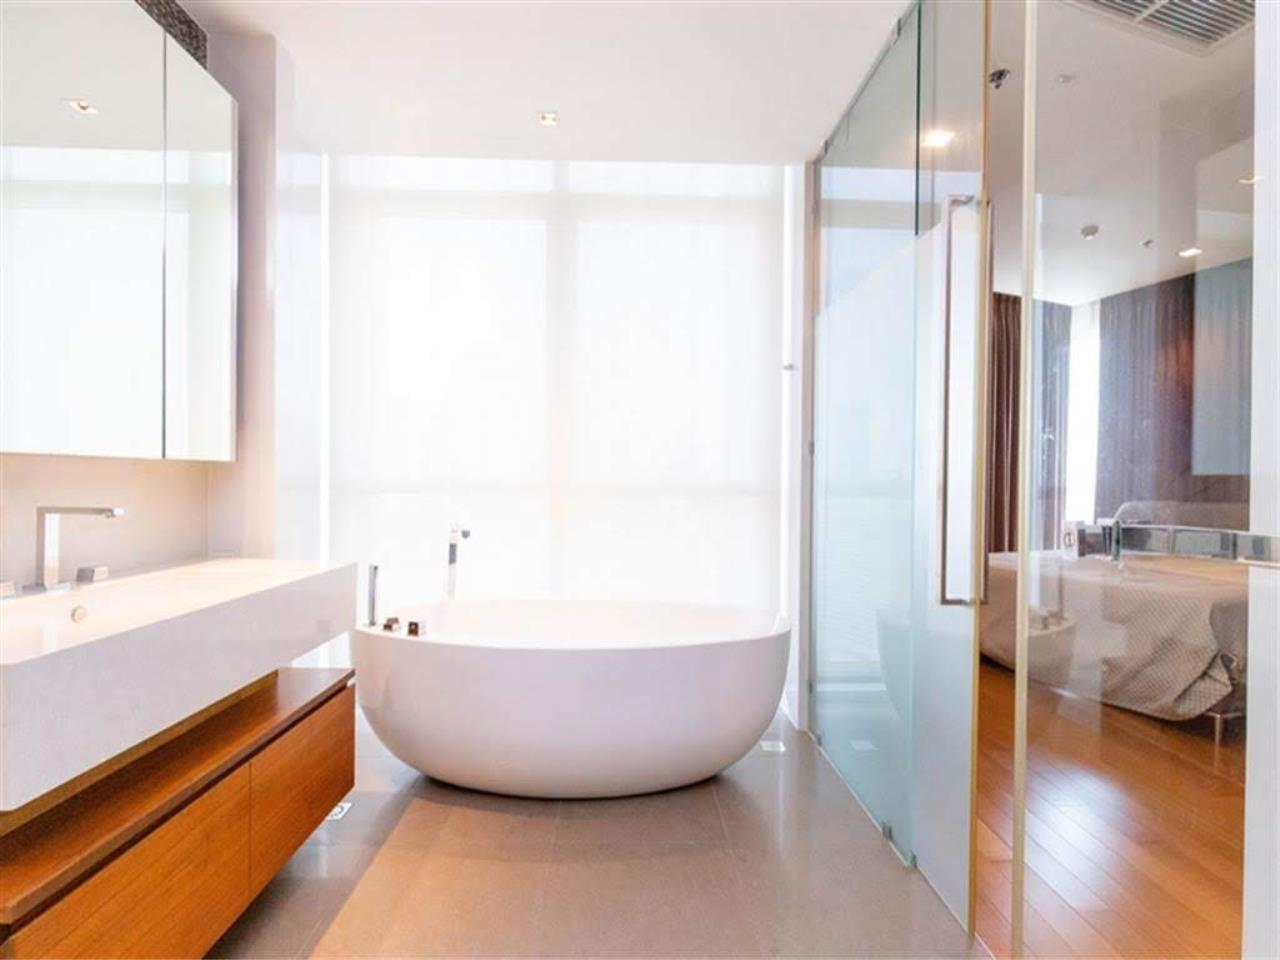 Bestbkkcondos Agency's The River - 233,8 sqm - For Sale : 52 000 000 THB - 3 Bedrooms 31